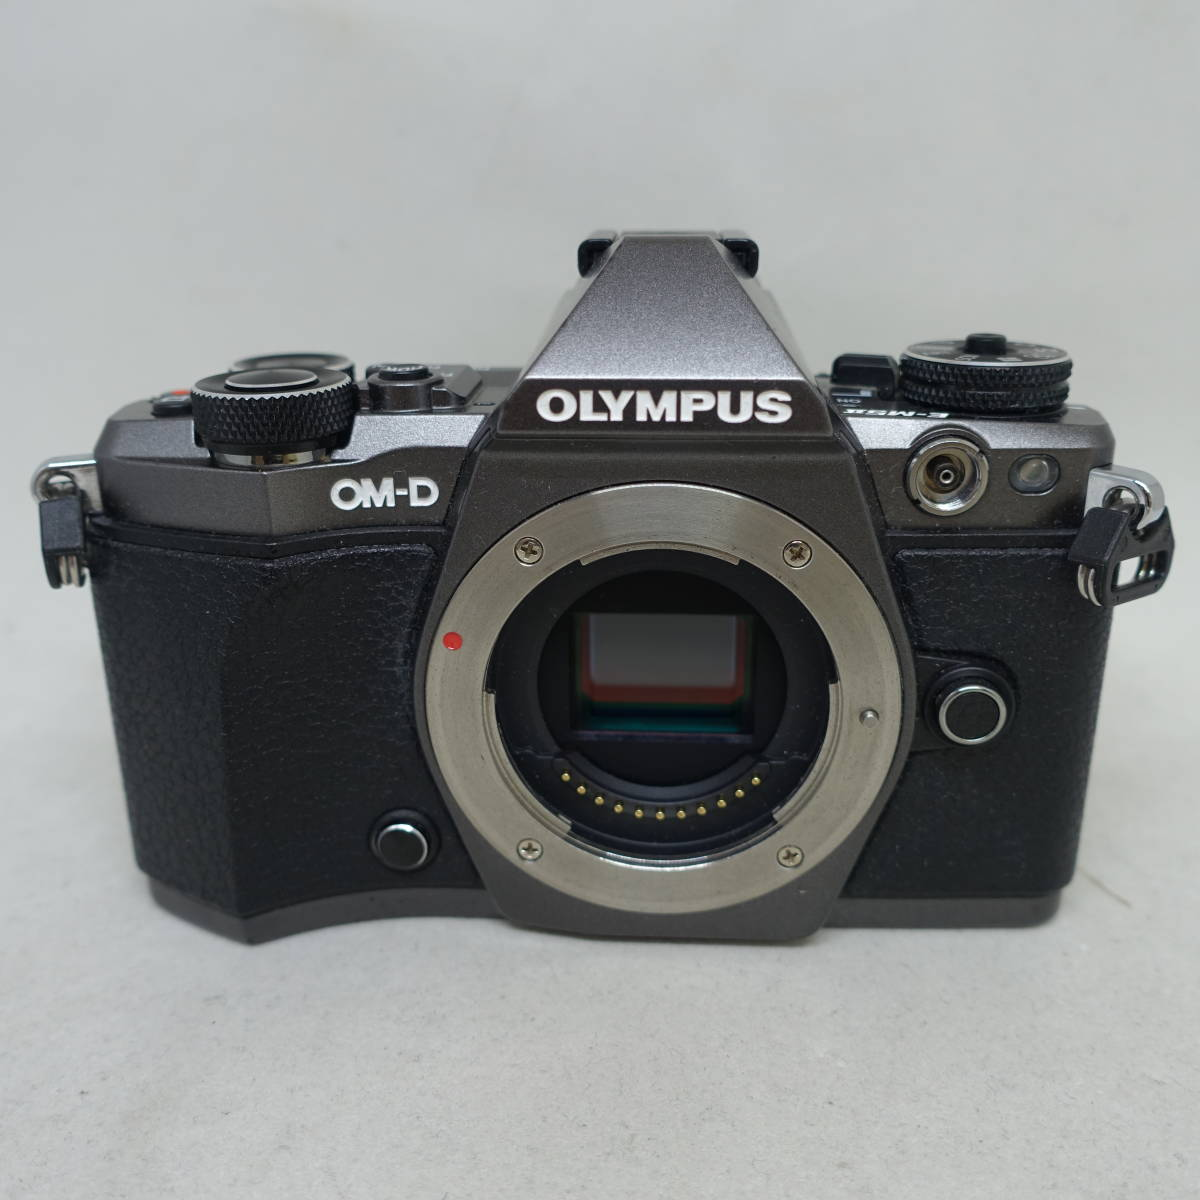 ★美品★Olympus オリンパス OM-D E-M5 Mark II Limited Edition Kit #205YO MO_画像2